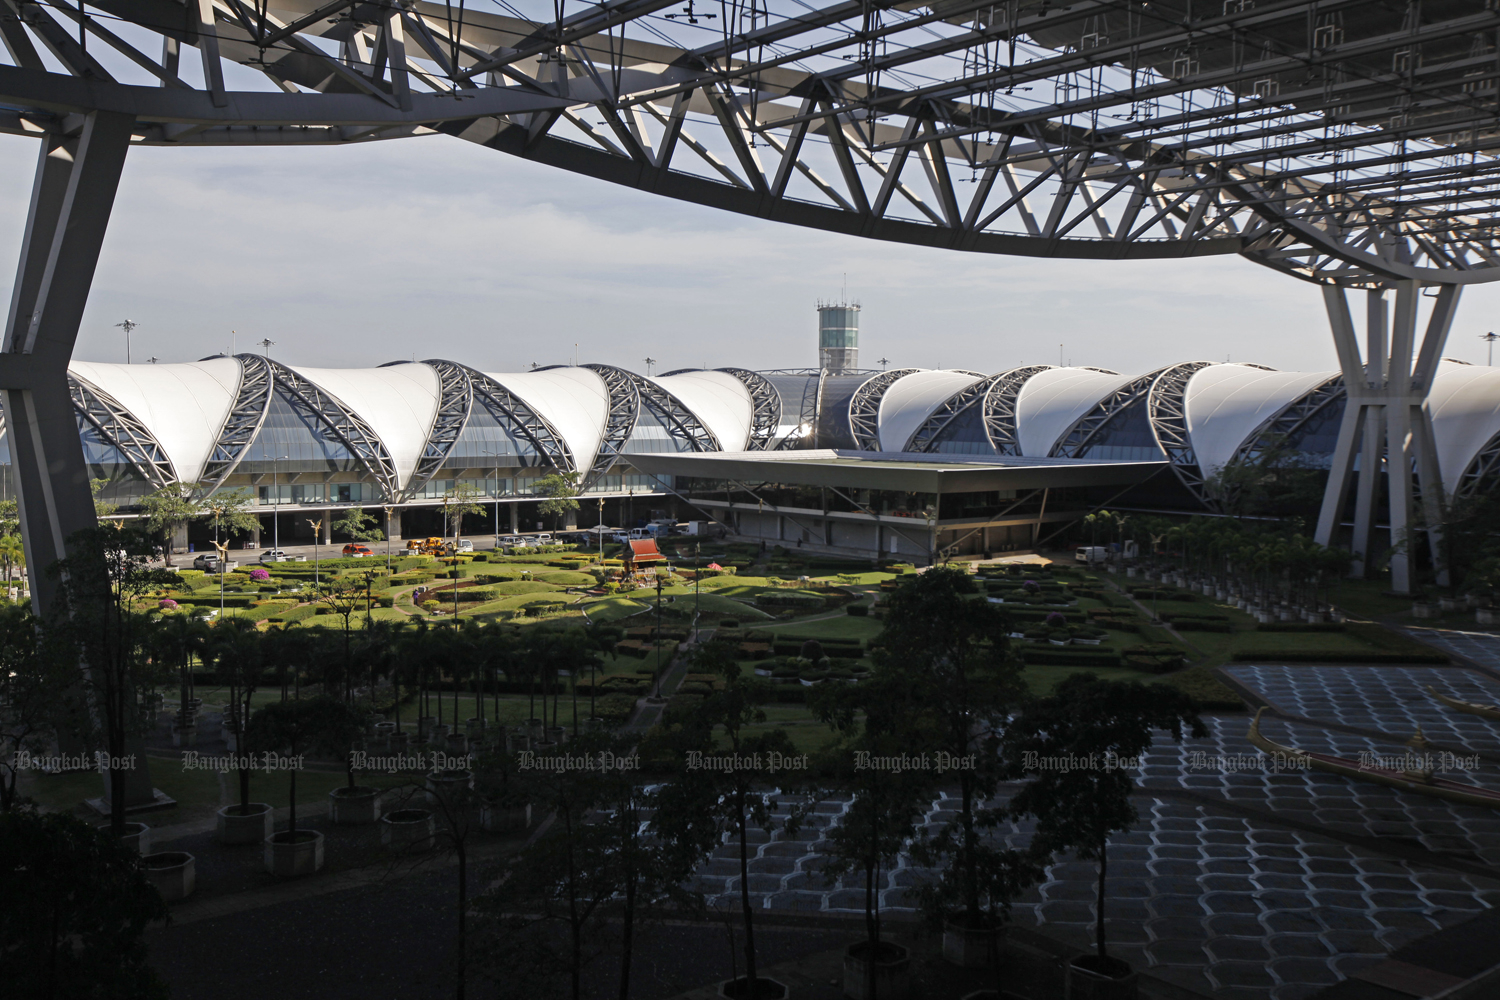 The Civil Aviation Authority of Thailand urges the new government to speed up construction of the second terminal at Suvarnabhumi airport.